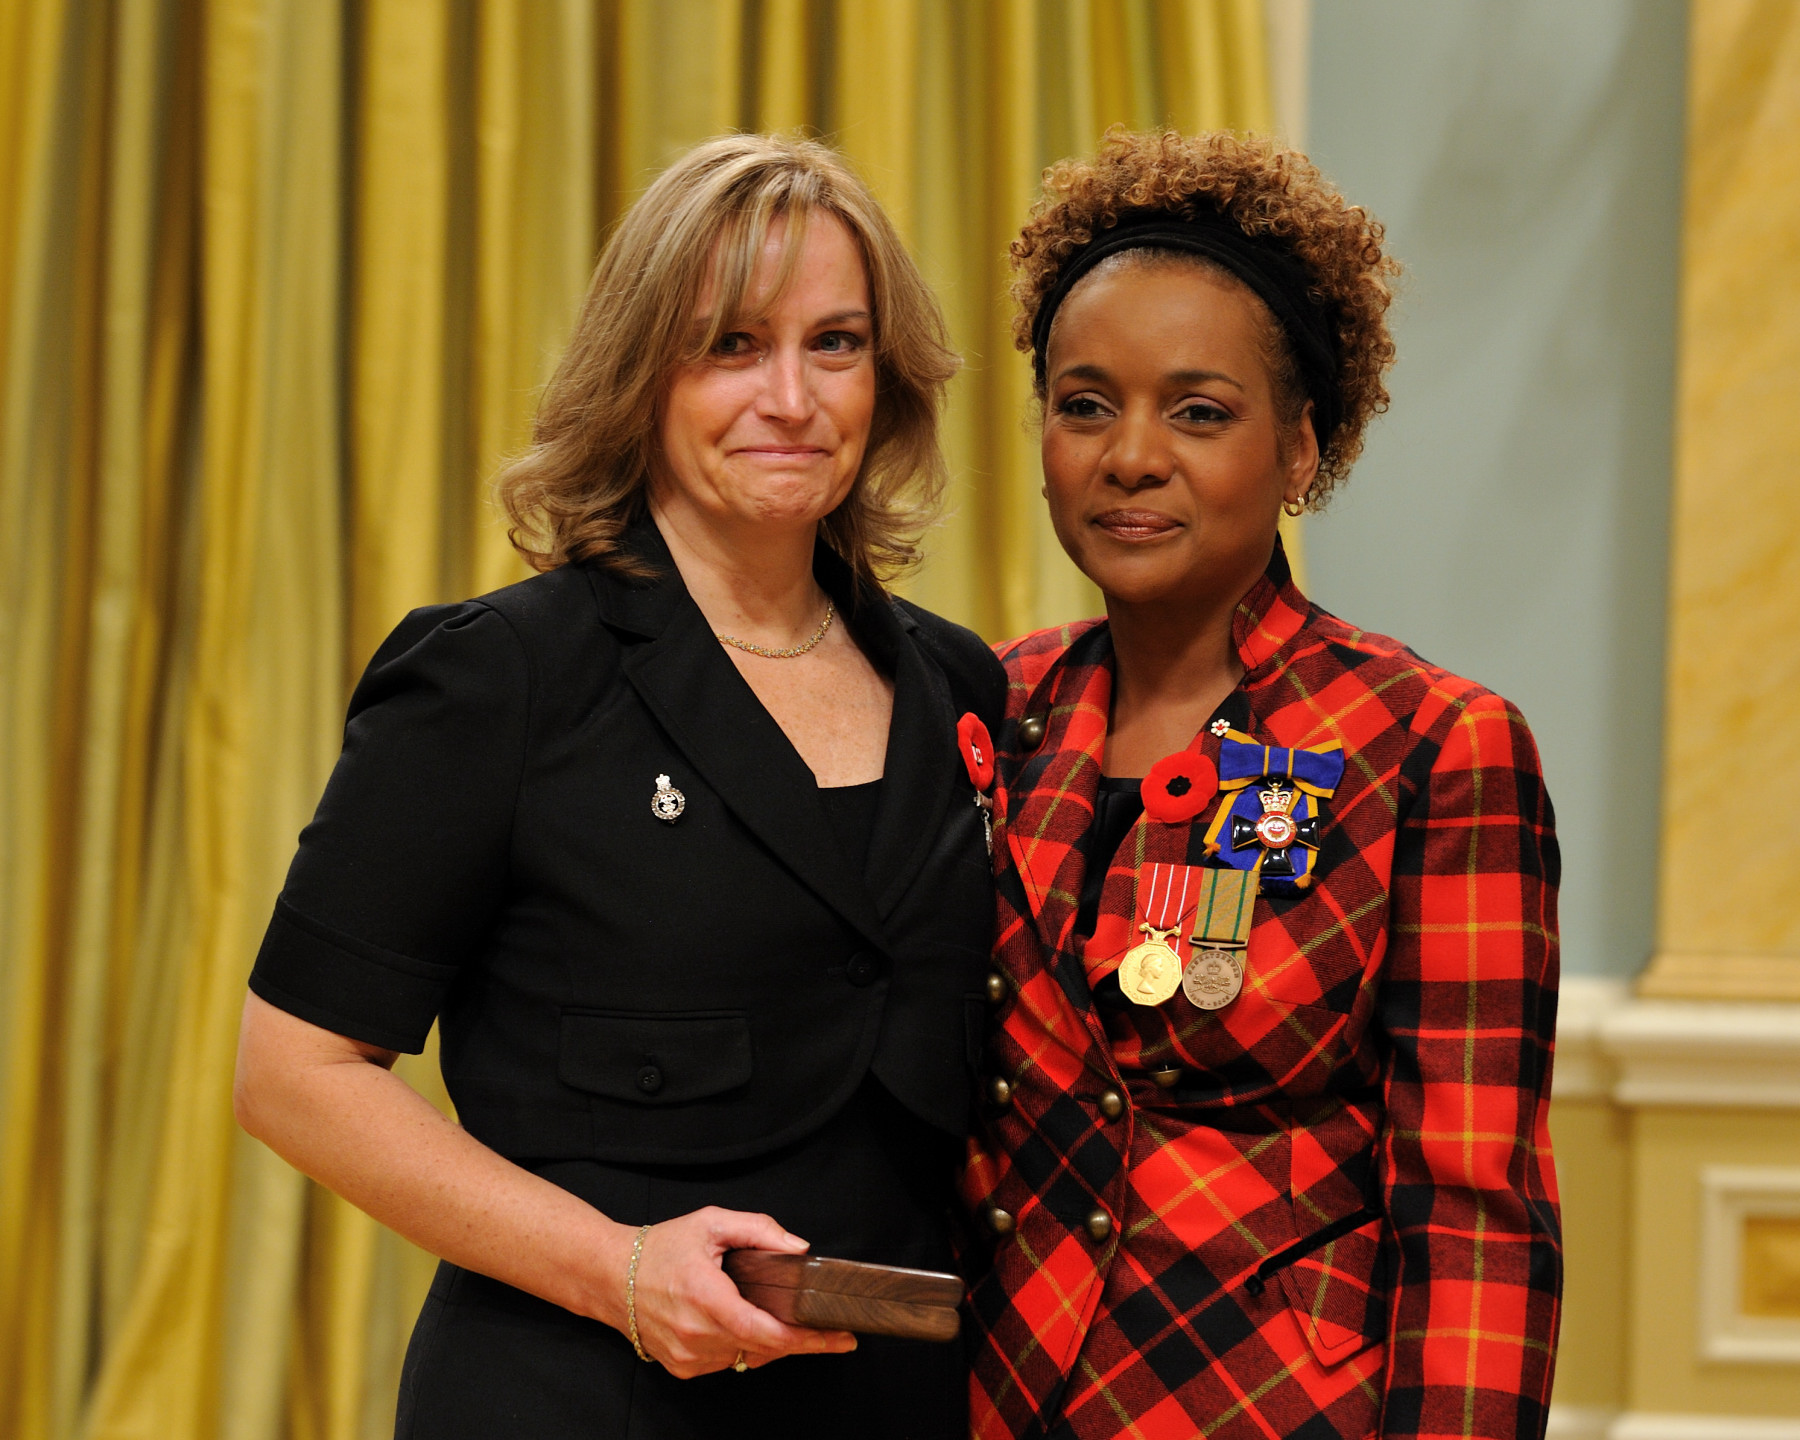 Her Excellency the Right Honourable Michaëlle Jean, Commander-in-Chief of Canada, presented the Sacrifice Medal to the wife of Major Paeta Derek Hess-von Kruedener, M.S.C., C.D., who was honoured posthumously.